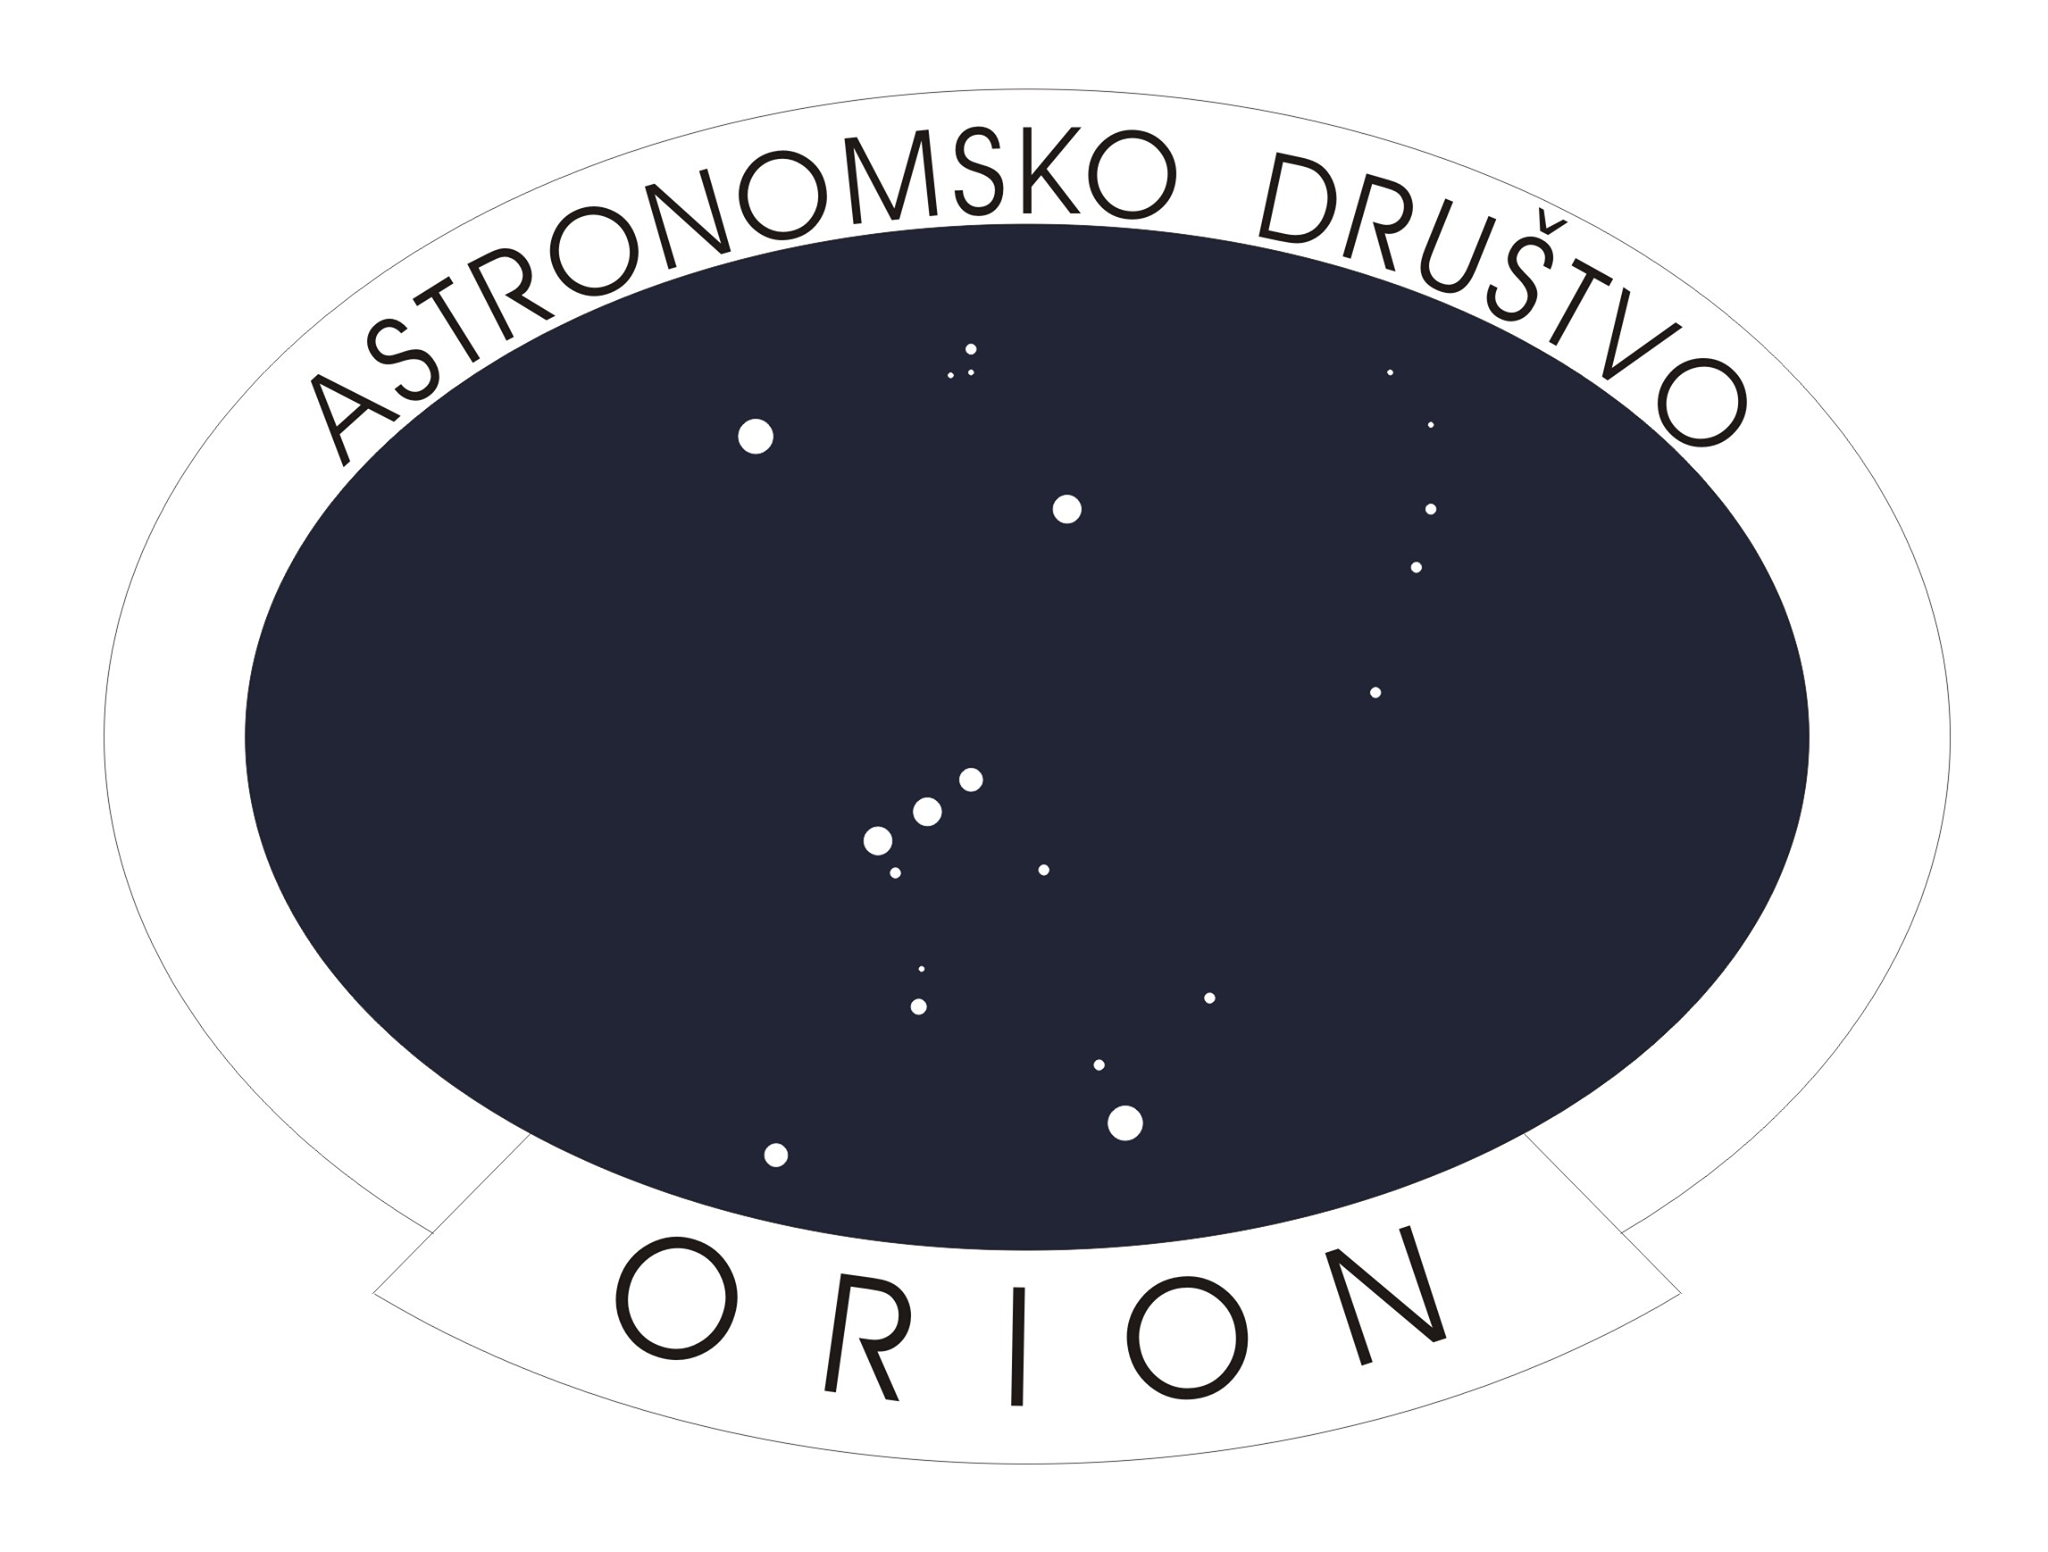 logo orion